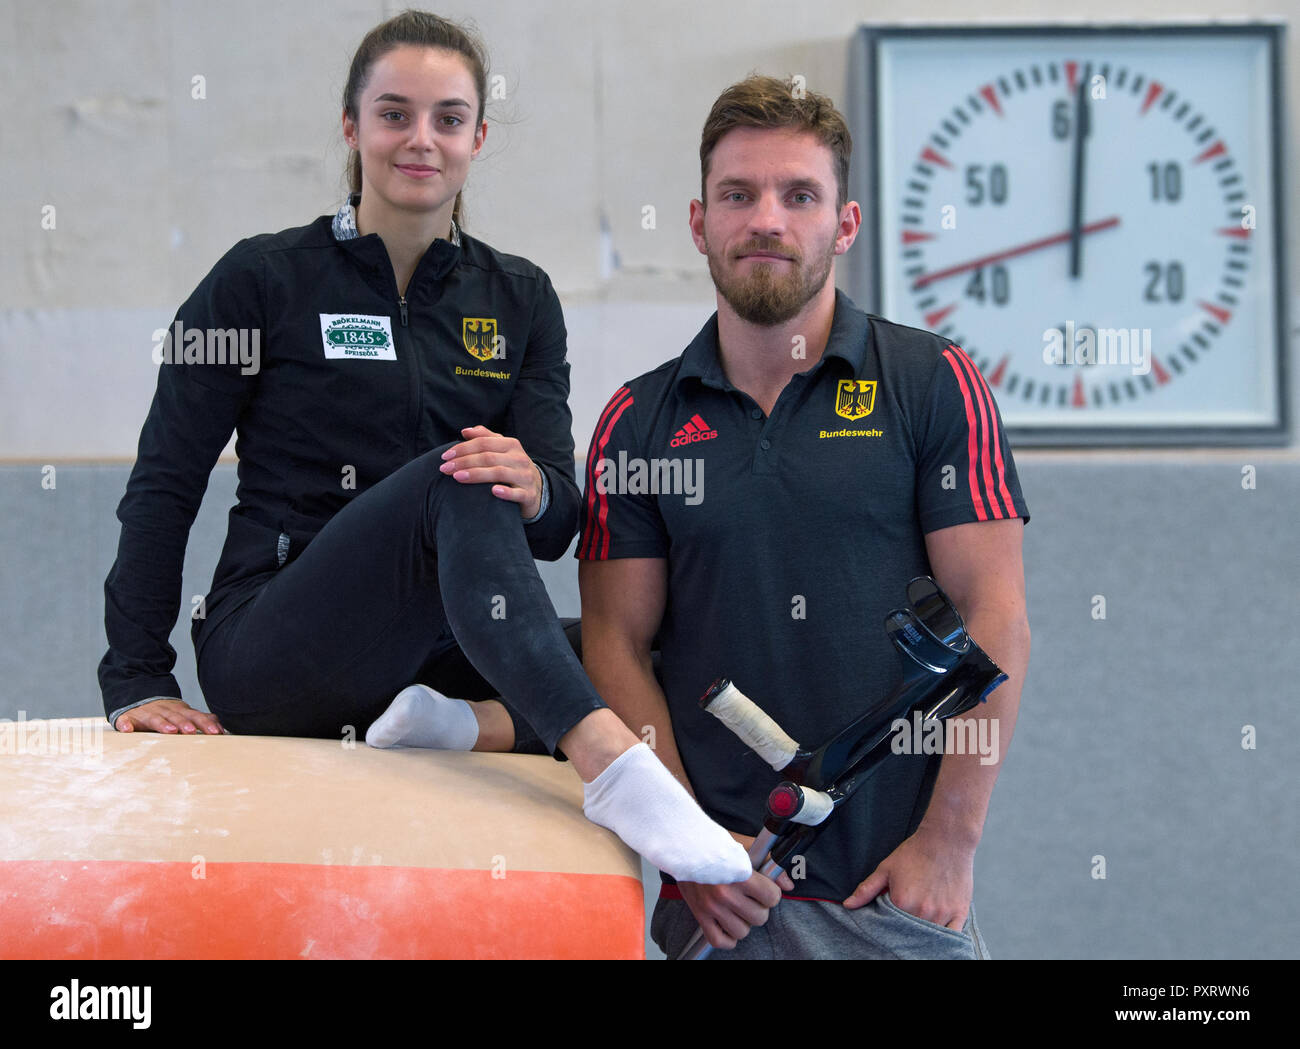 17 October 2018, Saxony, Chemnitz: Pauline Schäfer, World Champion at the balance beam and bar specialist Andreas Bretschneider in the gymnasium of the Sportforum Chemnitz. The top gymnasts from Chemnitz miss the World Championship in Doha due to injury. Schäfer is still suffering from an ankle injury. Bretschneider tore his Achilles tendon in his left foot at the German Championships in Leipzig. (to dpa-message: 'Sad pair of gymnasts: Shepherds and Bretschneider experience World Championships before TV' from 24.10.2018) Photo: Hendrik Schmidt/dpa-Zentralbild/ZB - Stock Image